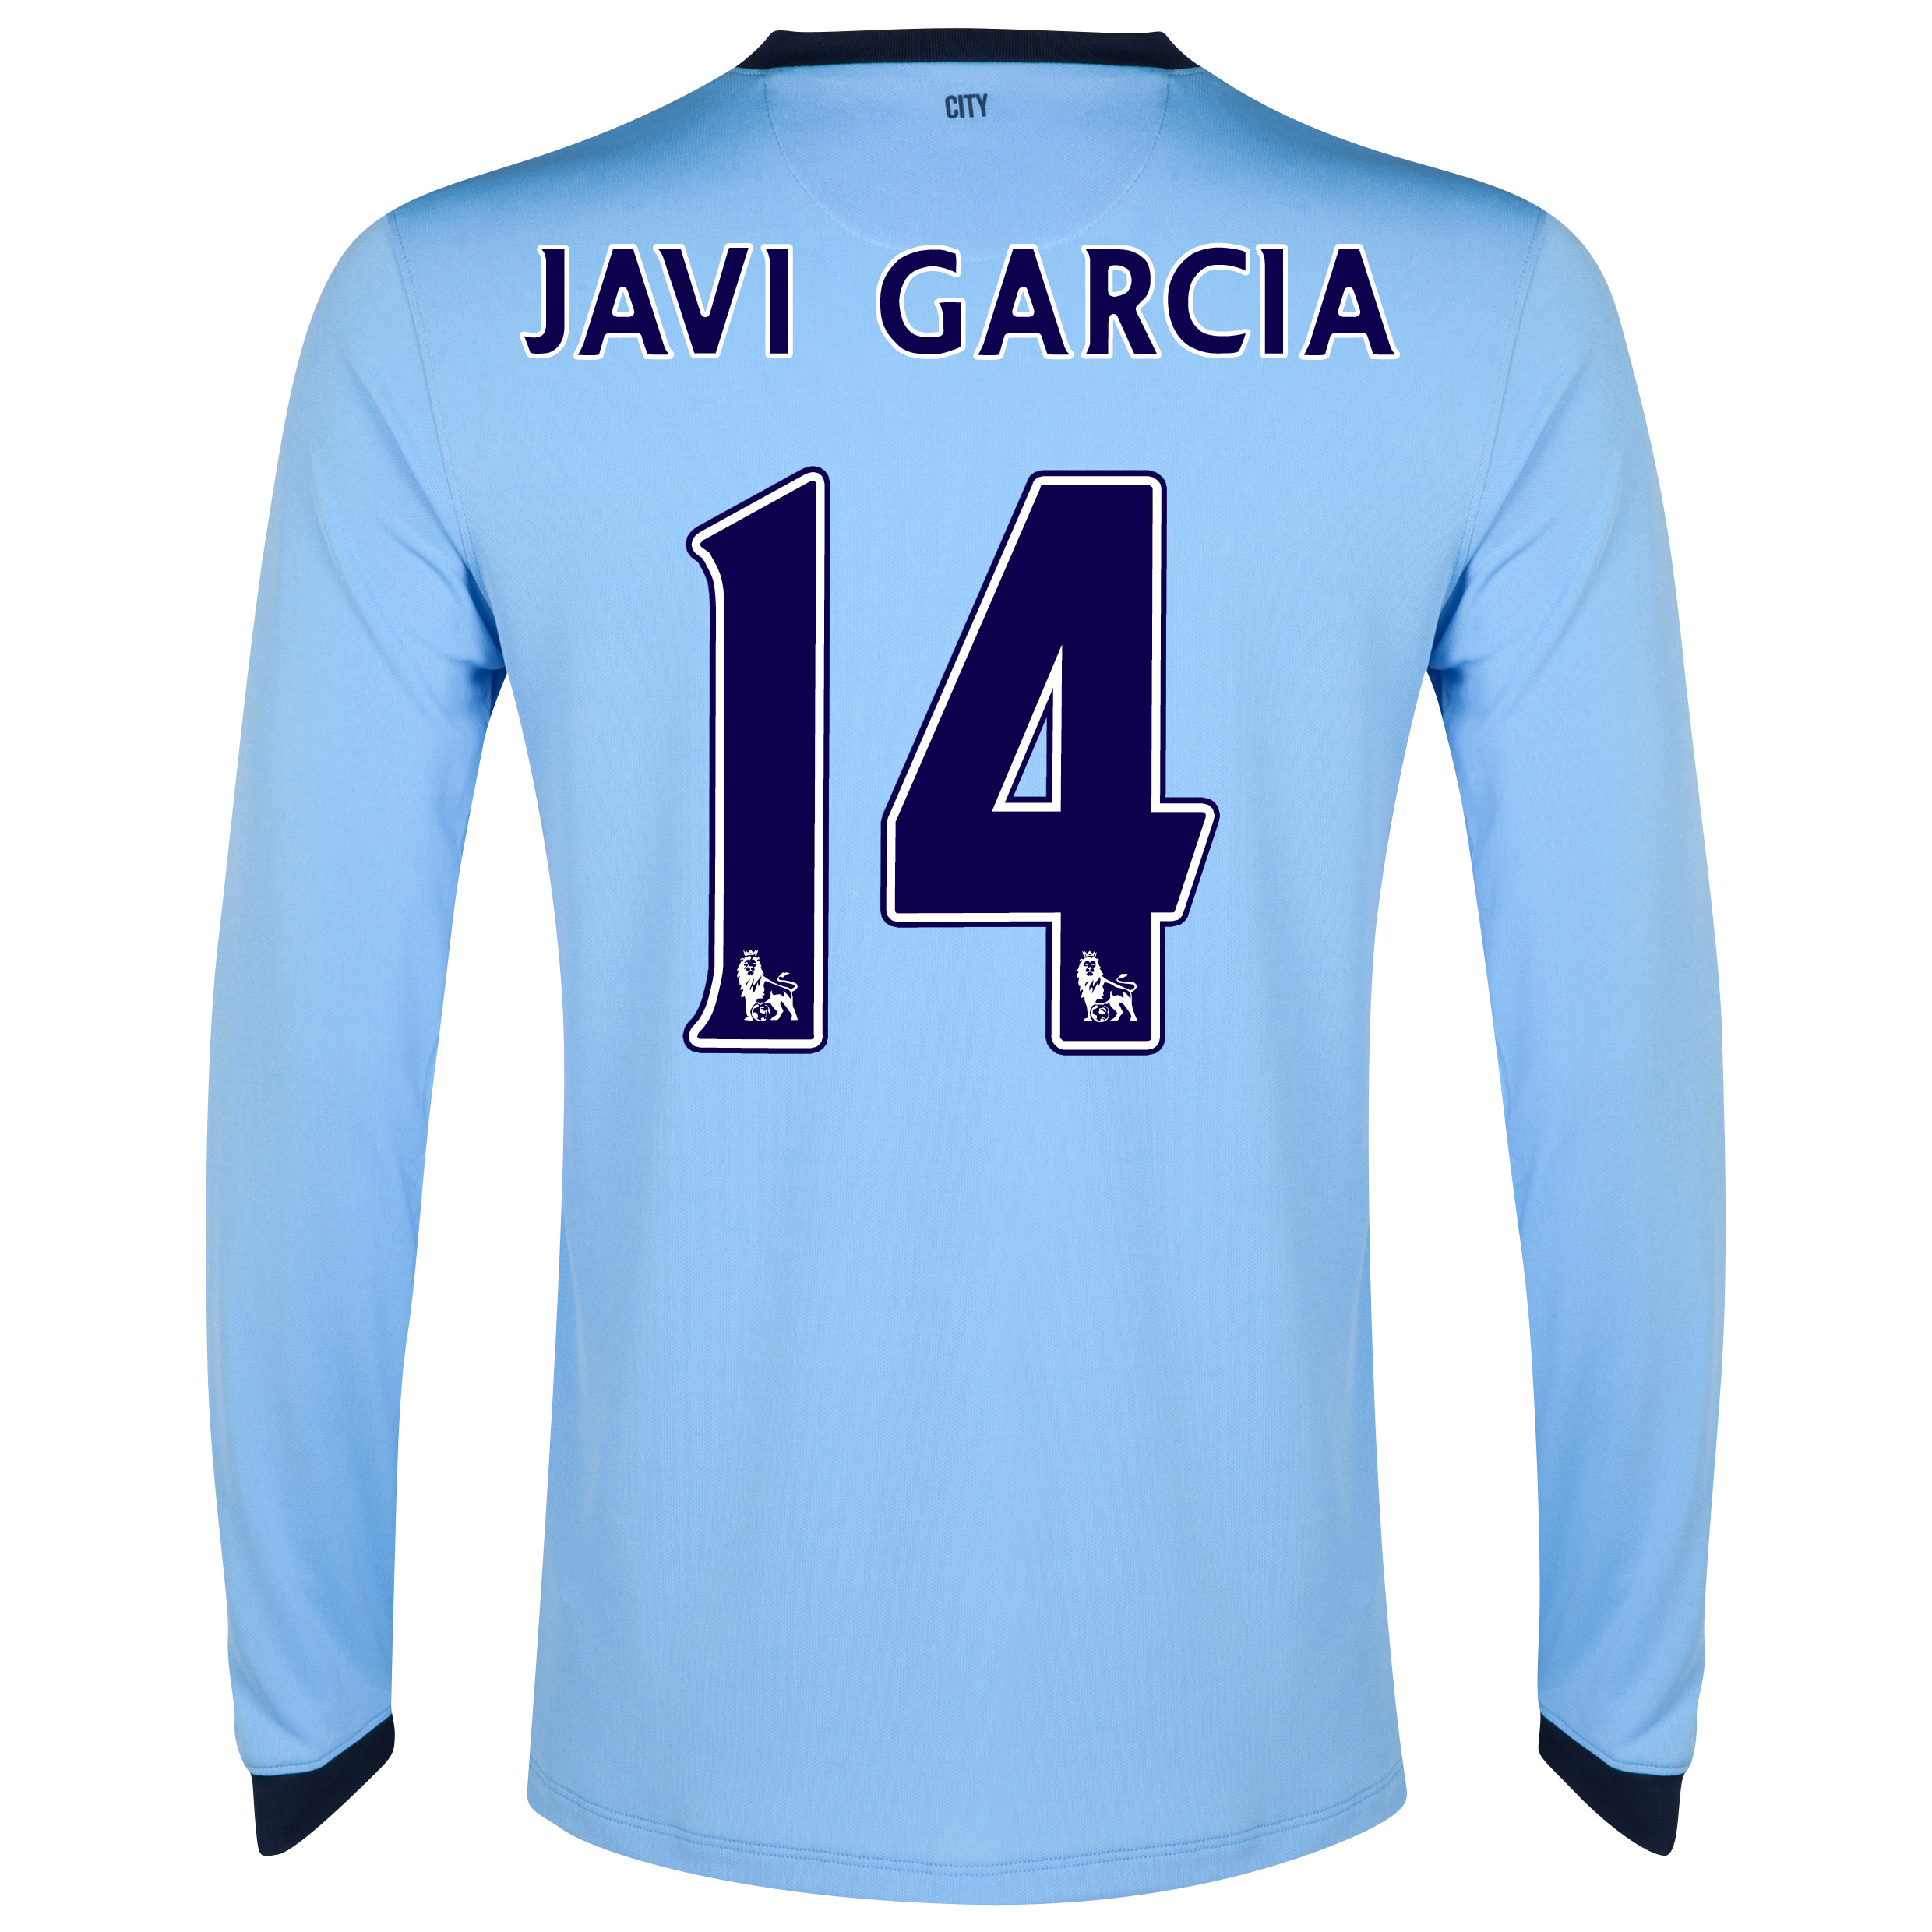 Manchester City Home Shirt 2014/15 - Long Sleeve - Kids Sky Blue with Javi Garcia 14 printing